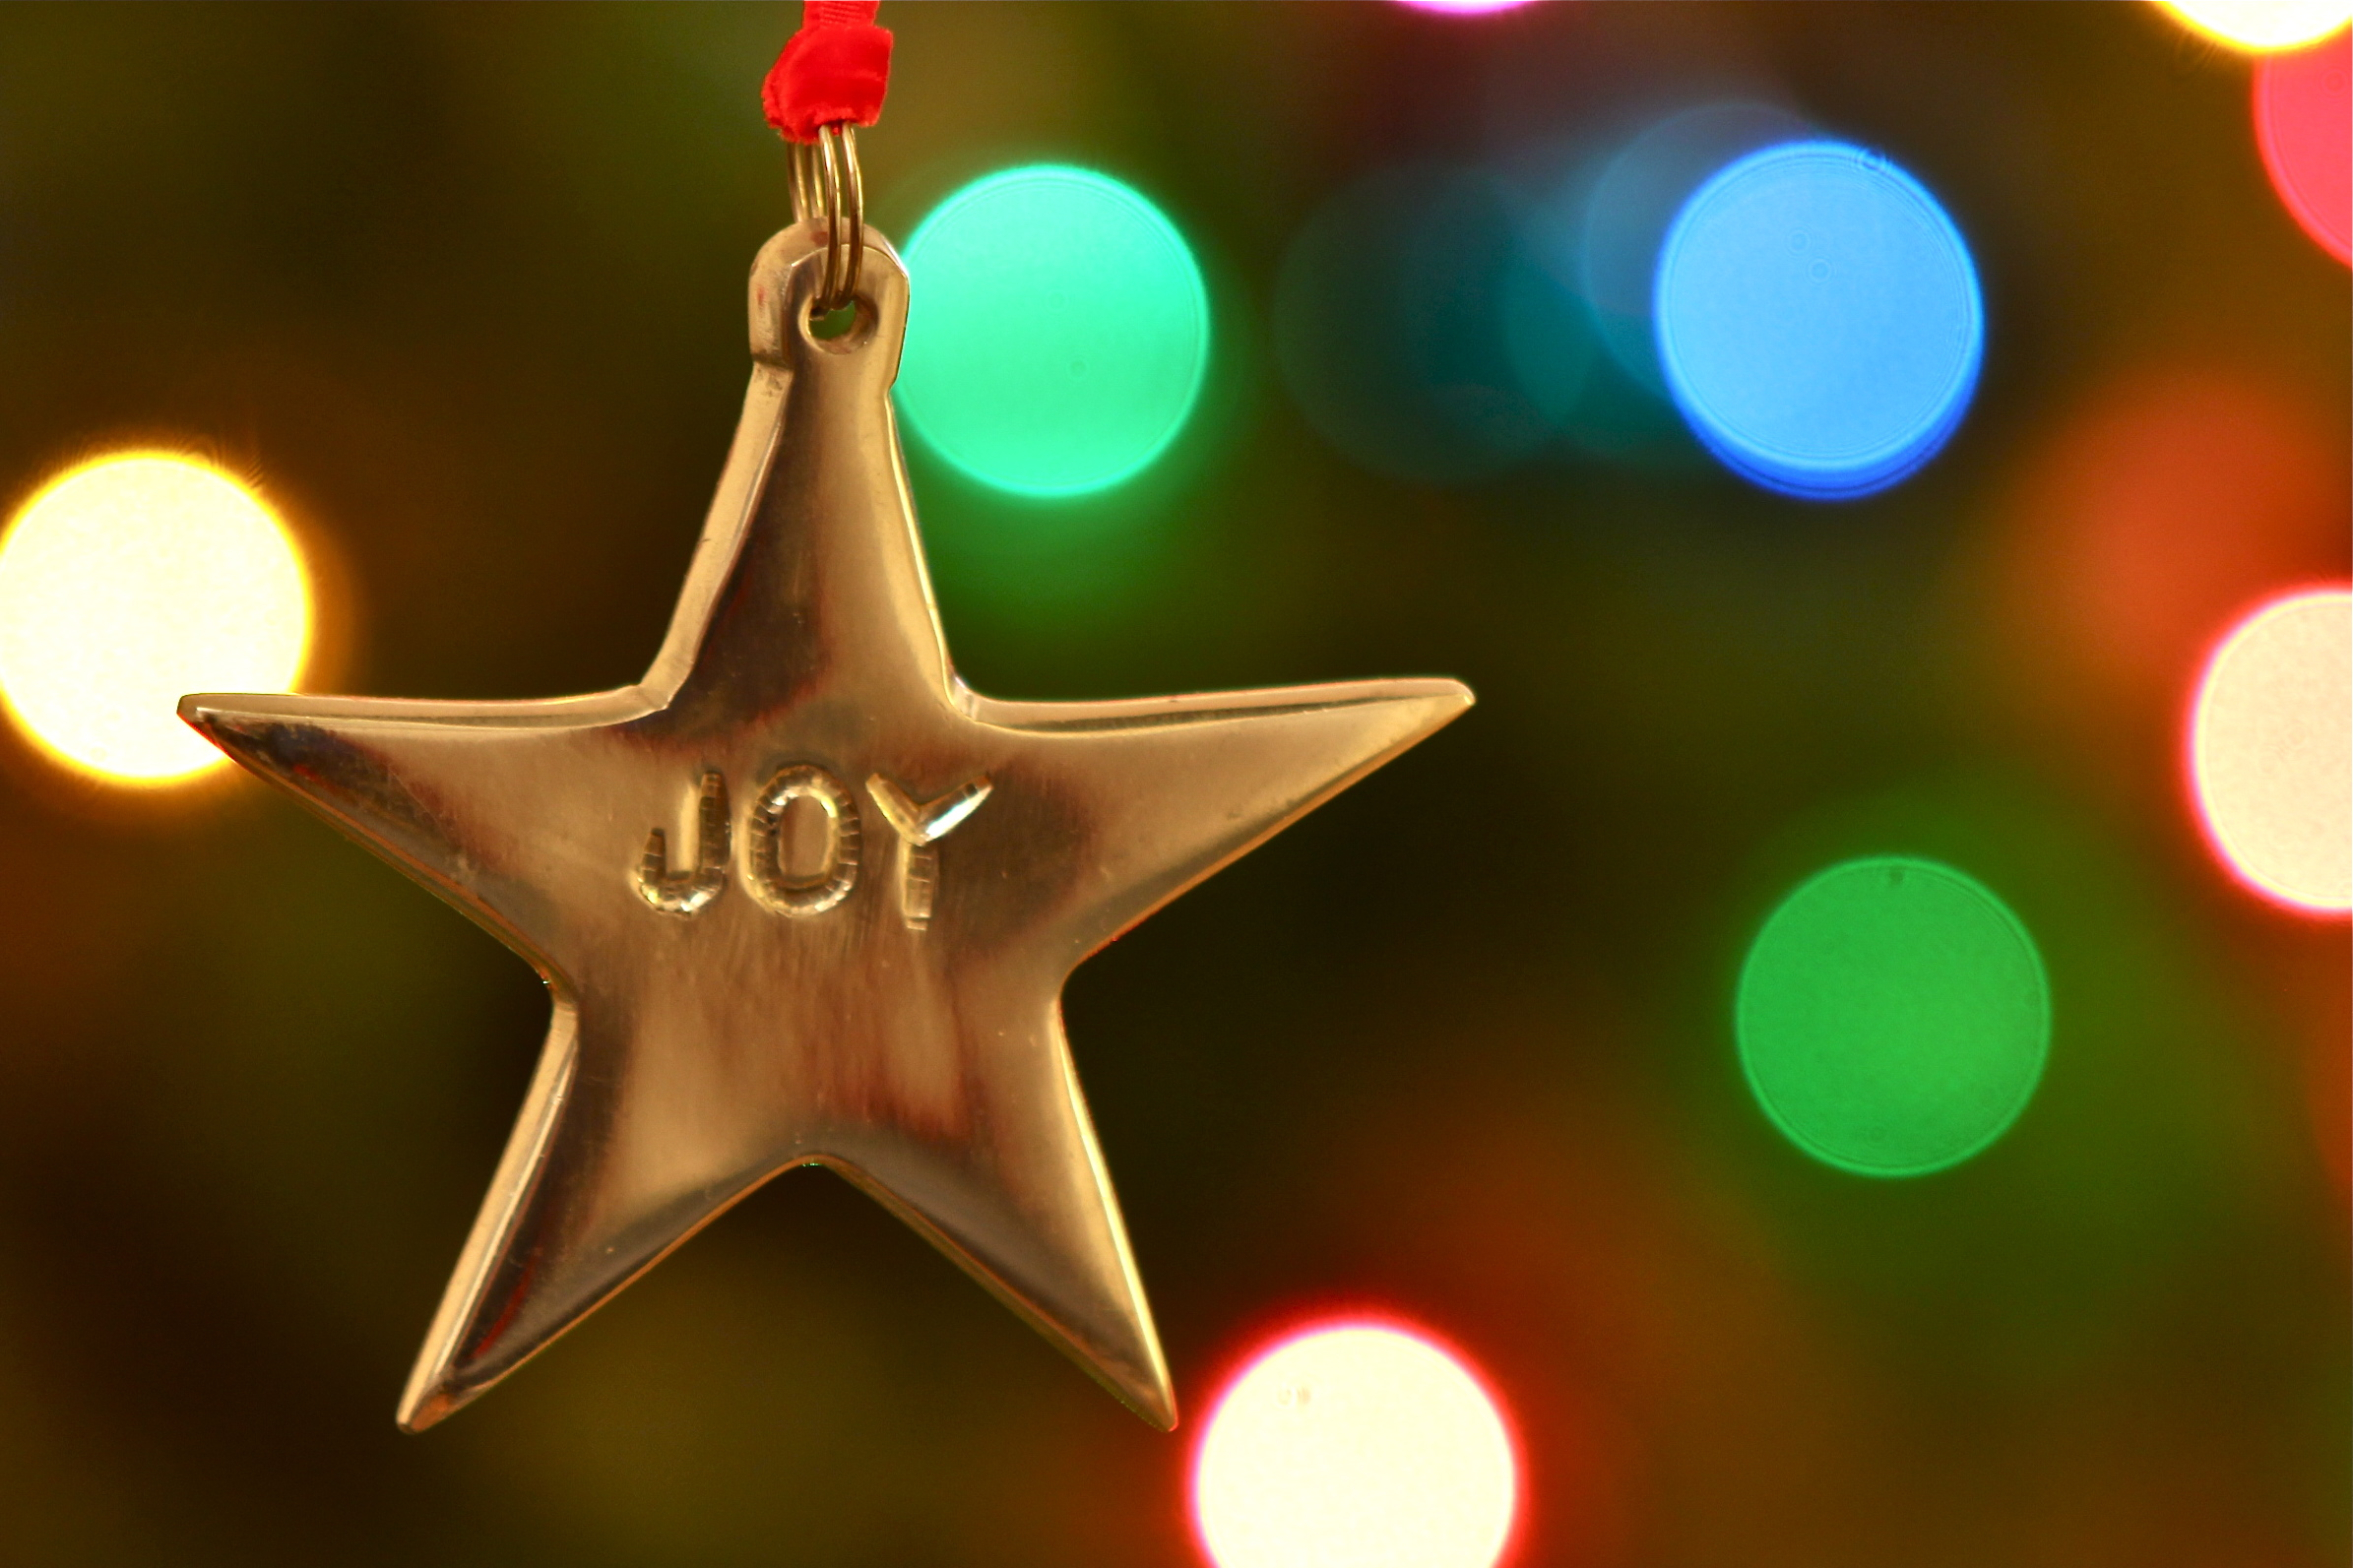 Joy Tree Decoration